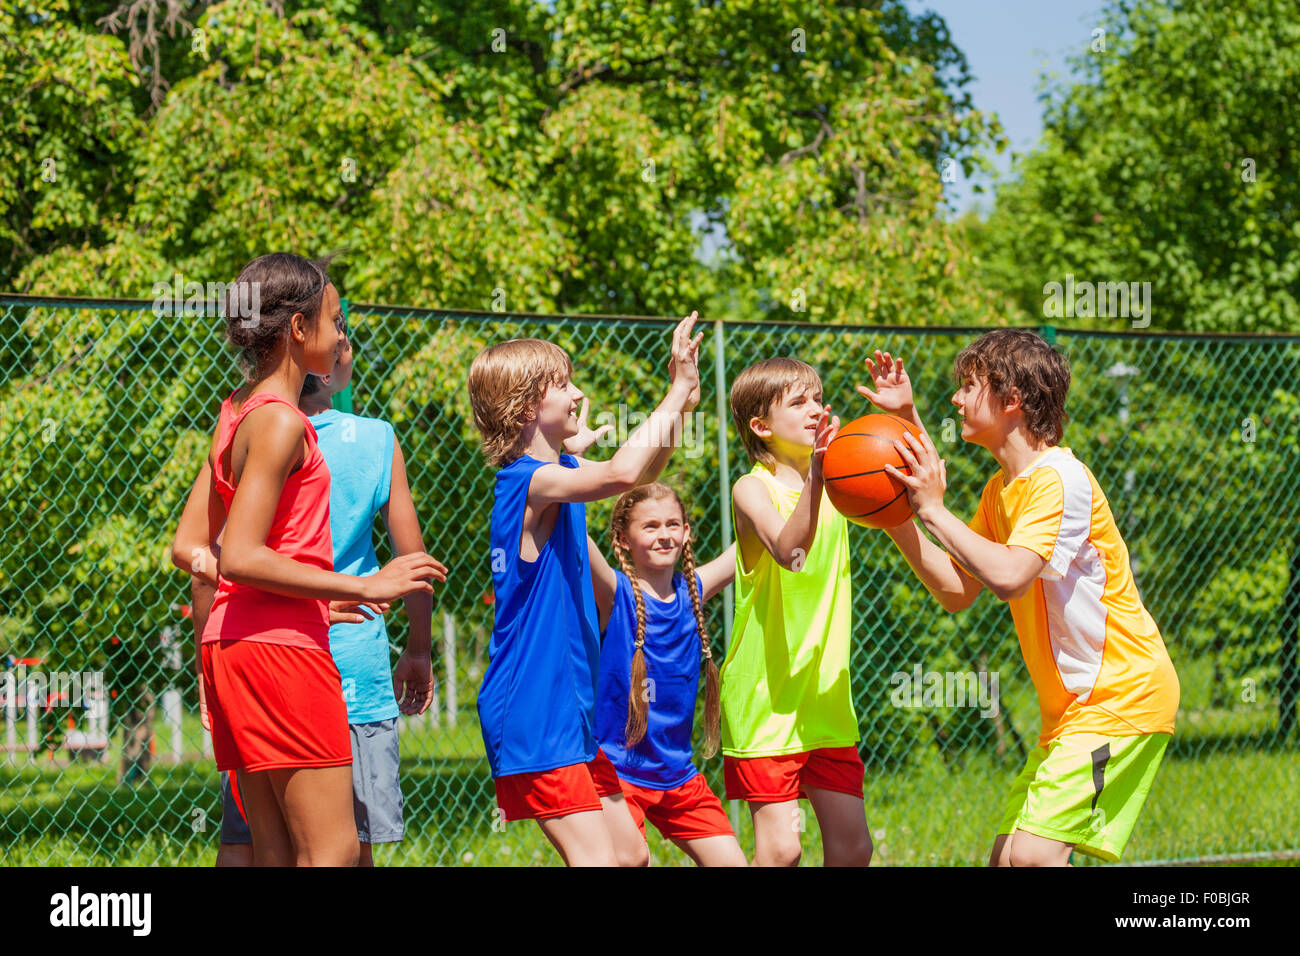 Happy Friends Playing Basketball Game Outside Stock Photo Alamy